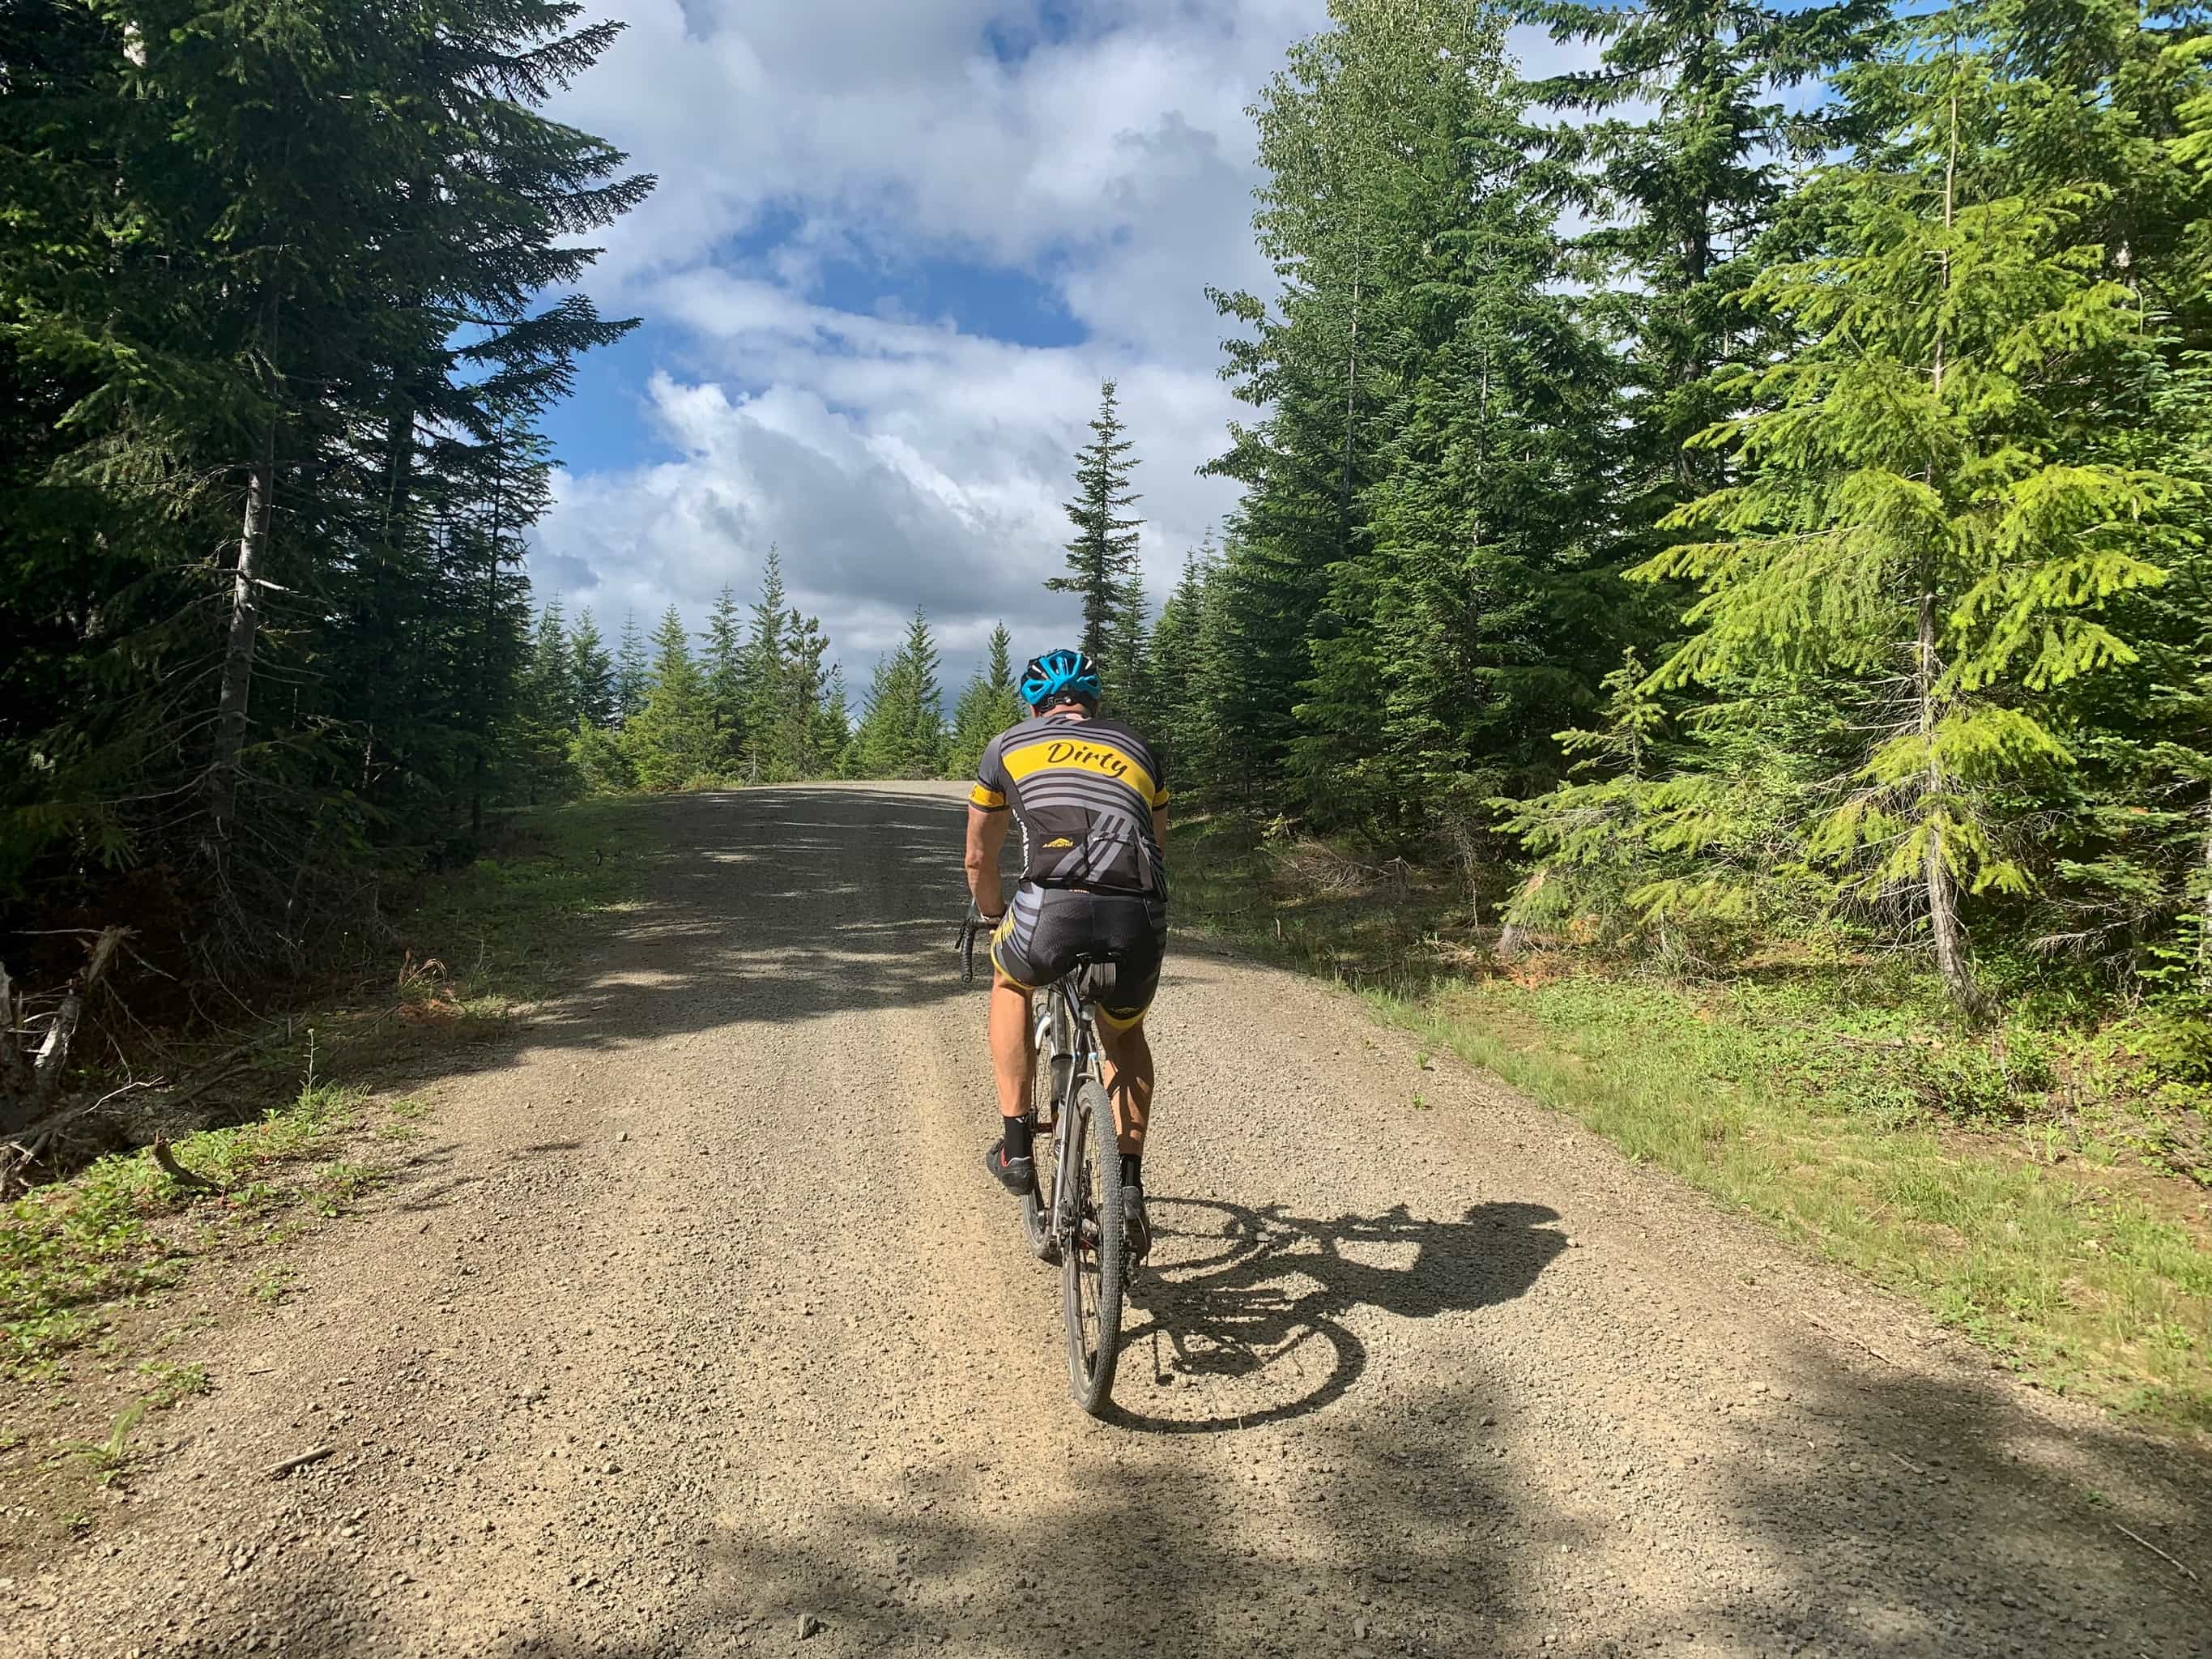 Bike rider on gravel road nearing intersection of NF-8810 and NF-8860 in Gifford Pinchot National Forest.